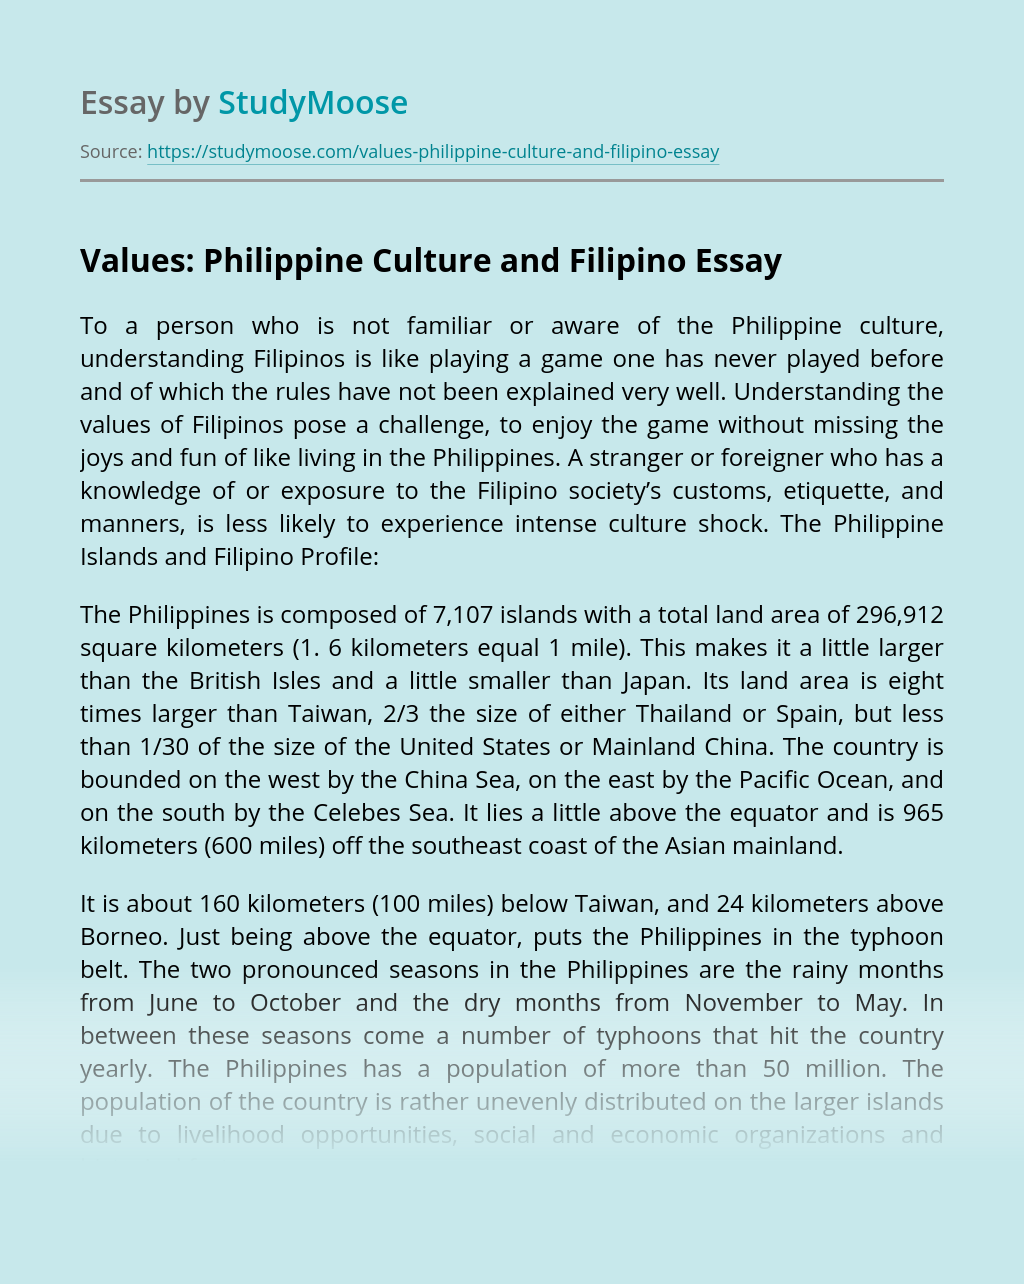 Values: Philippine Culture and Filipino